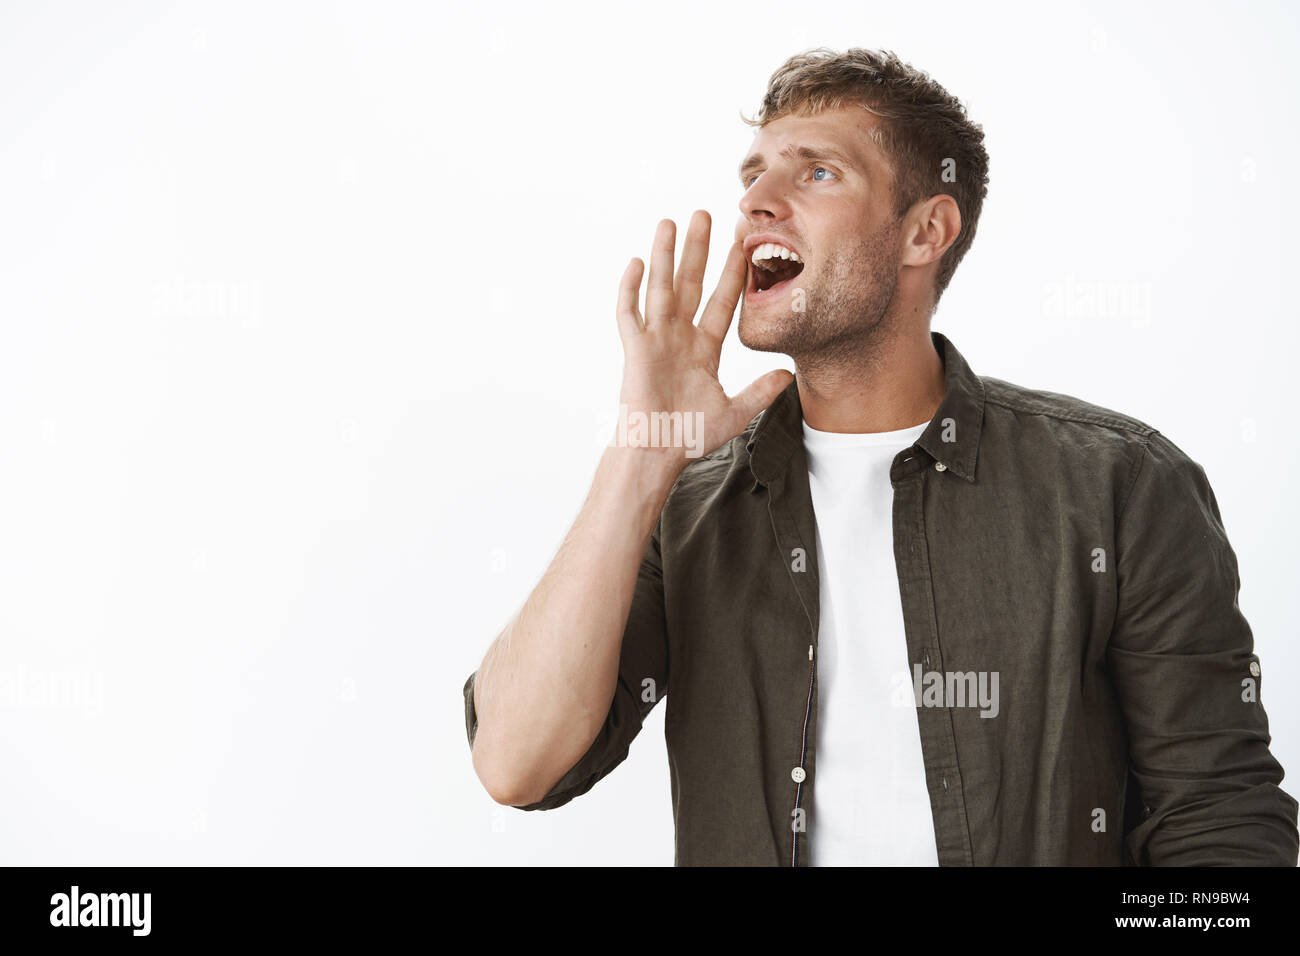 Charming charismatic european blond guy with blue eyes calling someone into distance yelling turning left holding hand near opened mouth as shouting - Stock Image